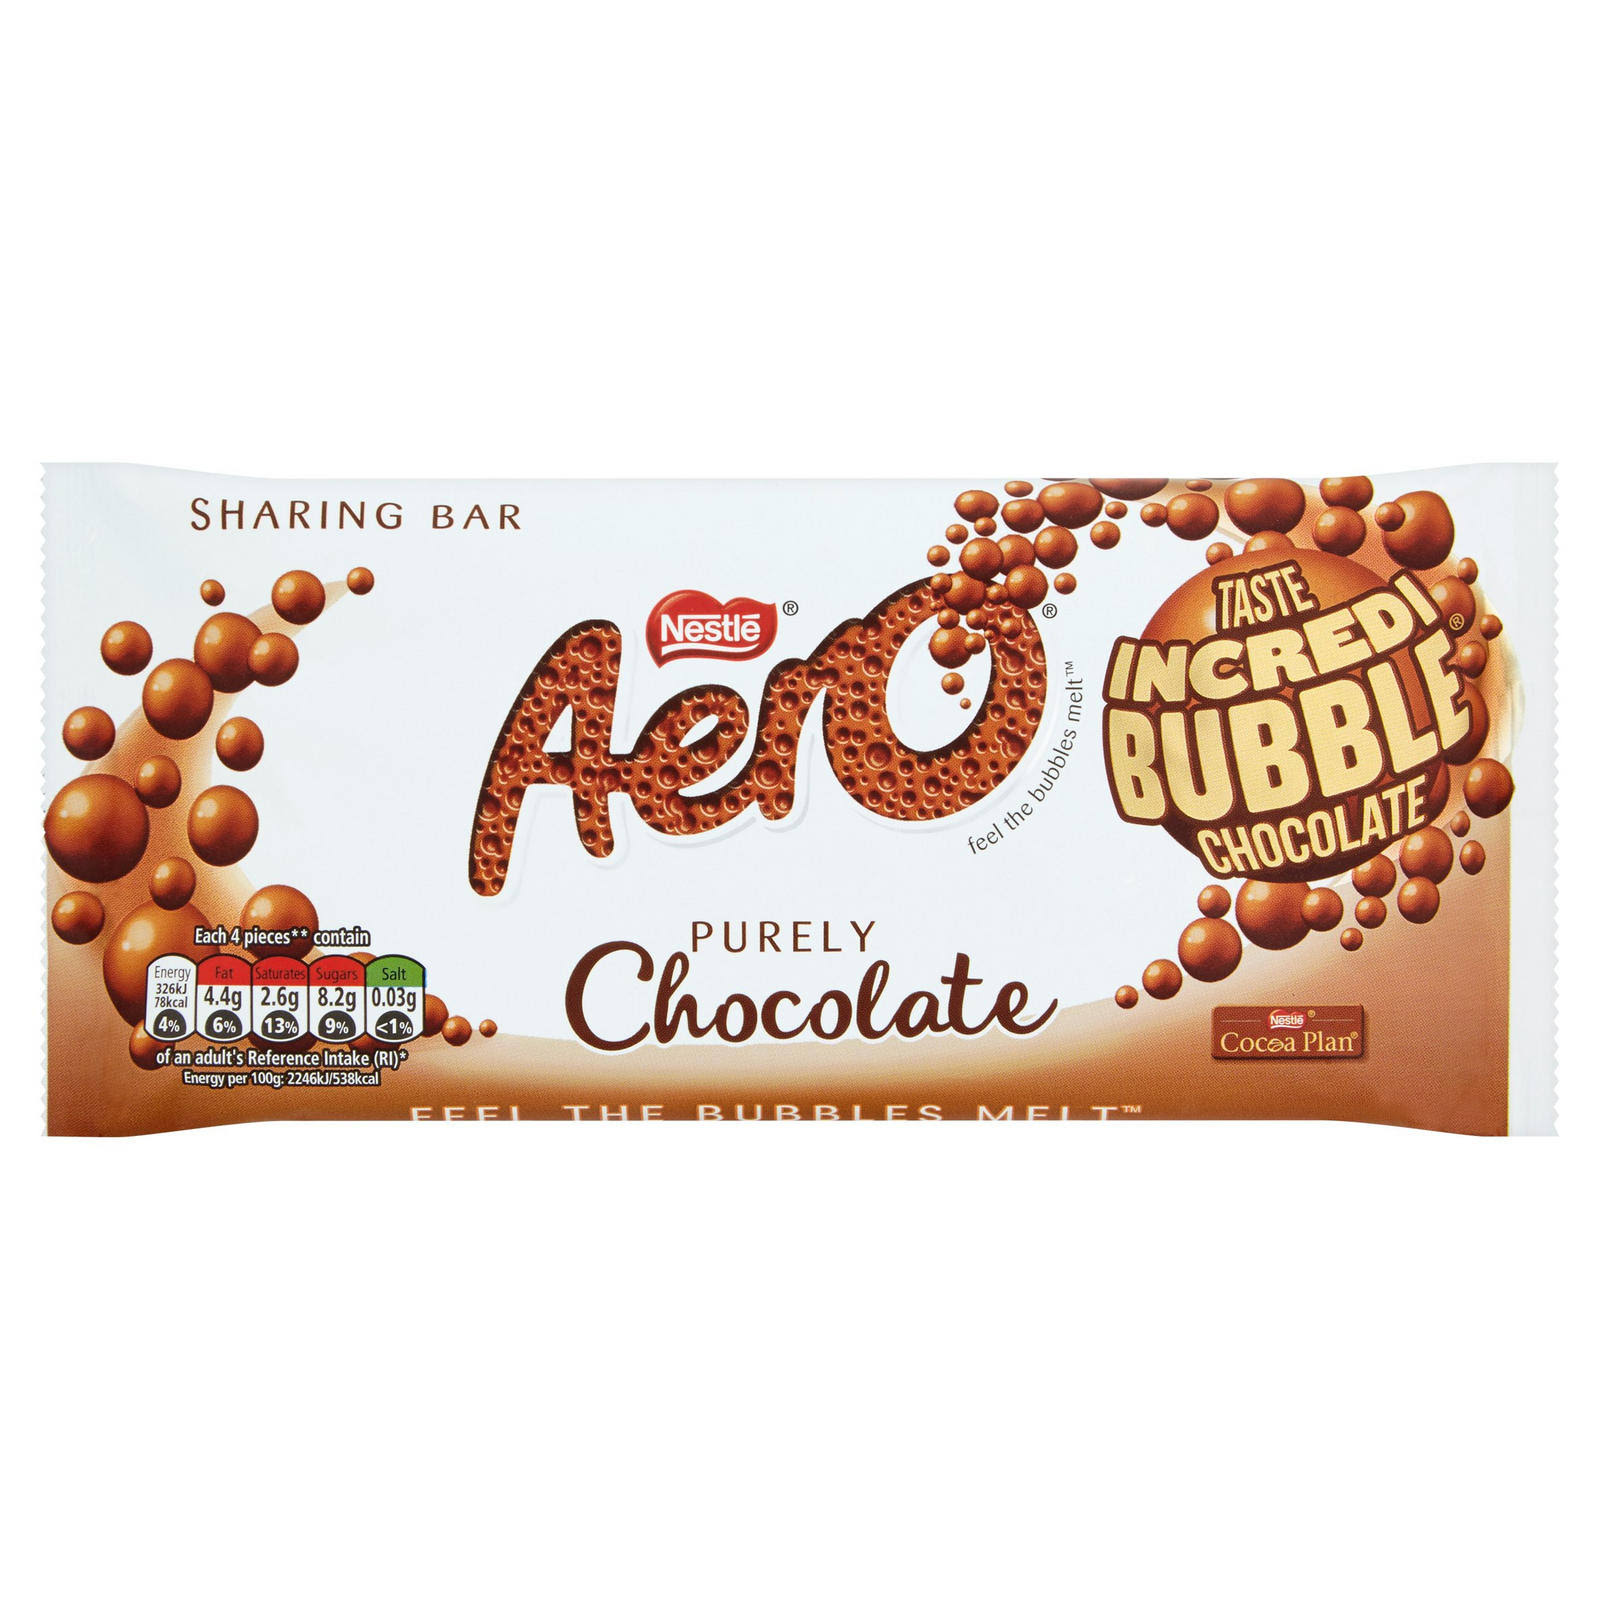 Aero Milk Chocolate Sharing Bar